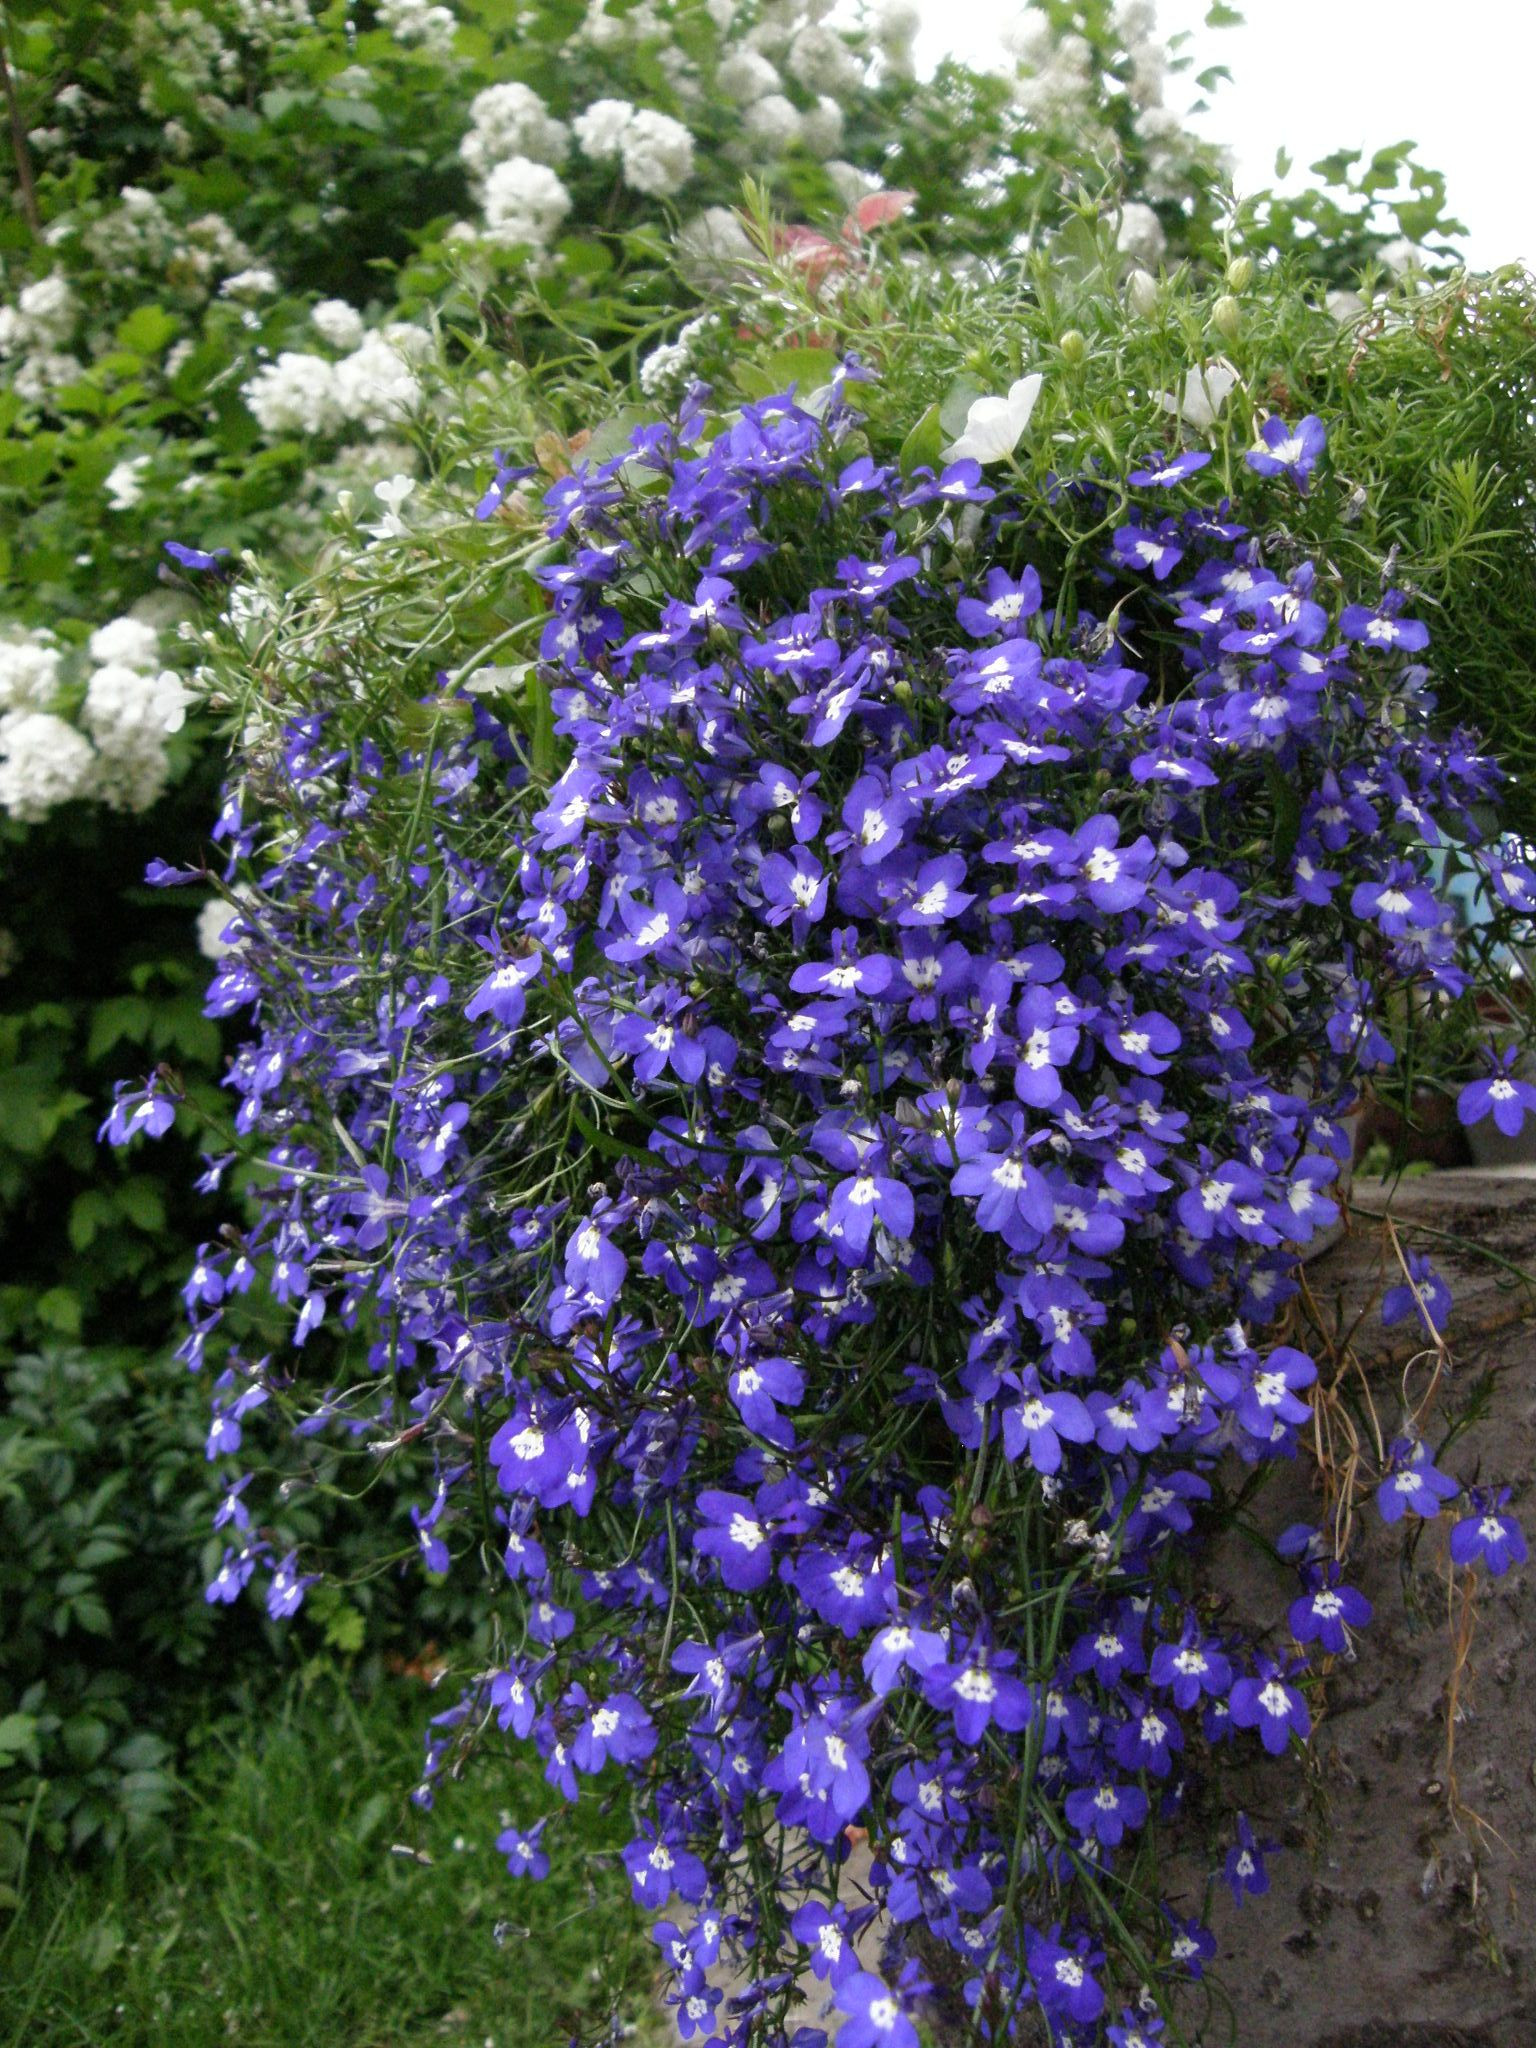 stored in the conservatory last year lobelia early blooms and blooms well thanks to fertilizing all